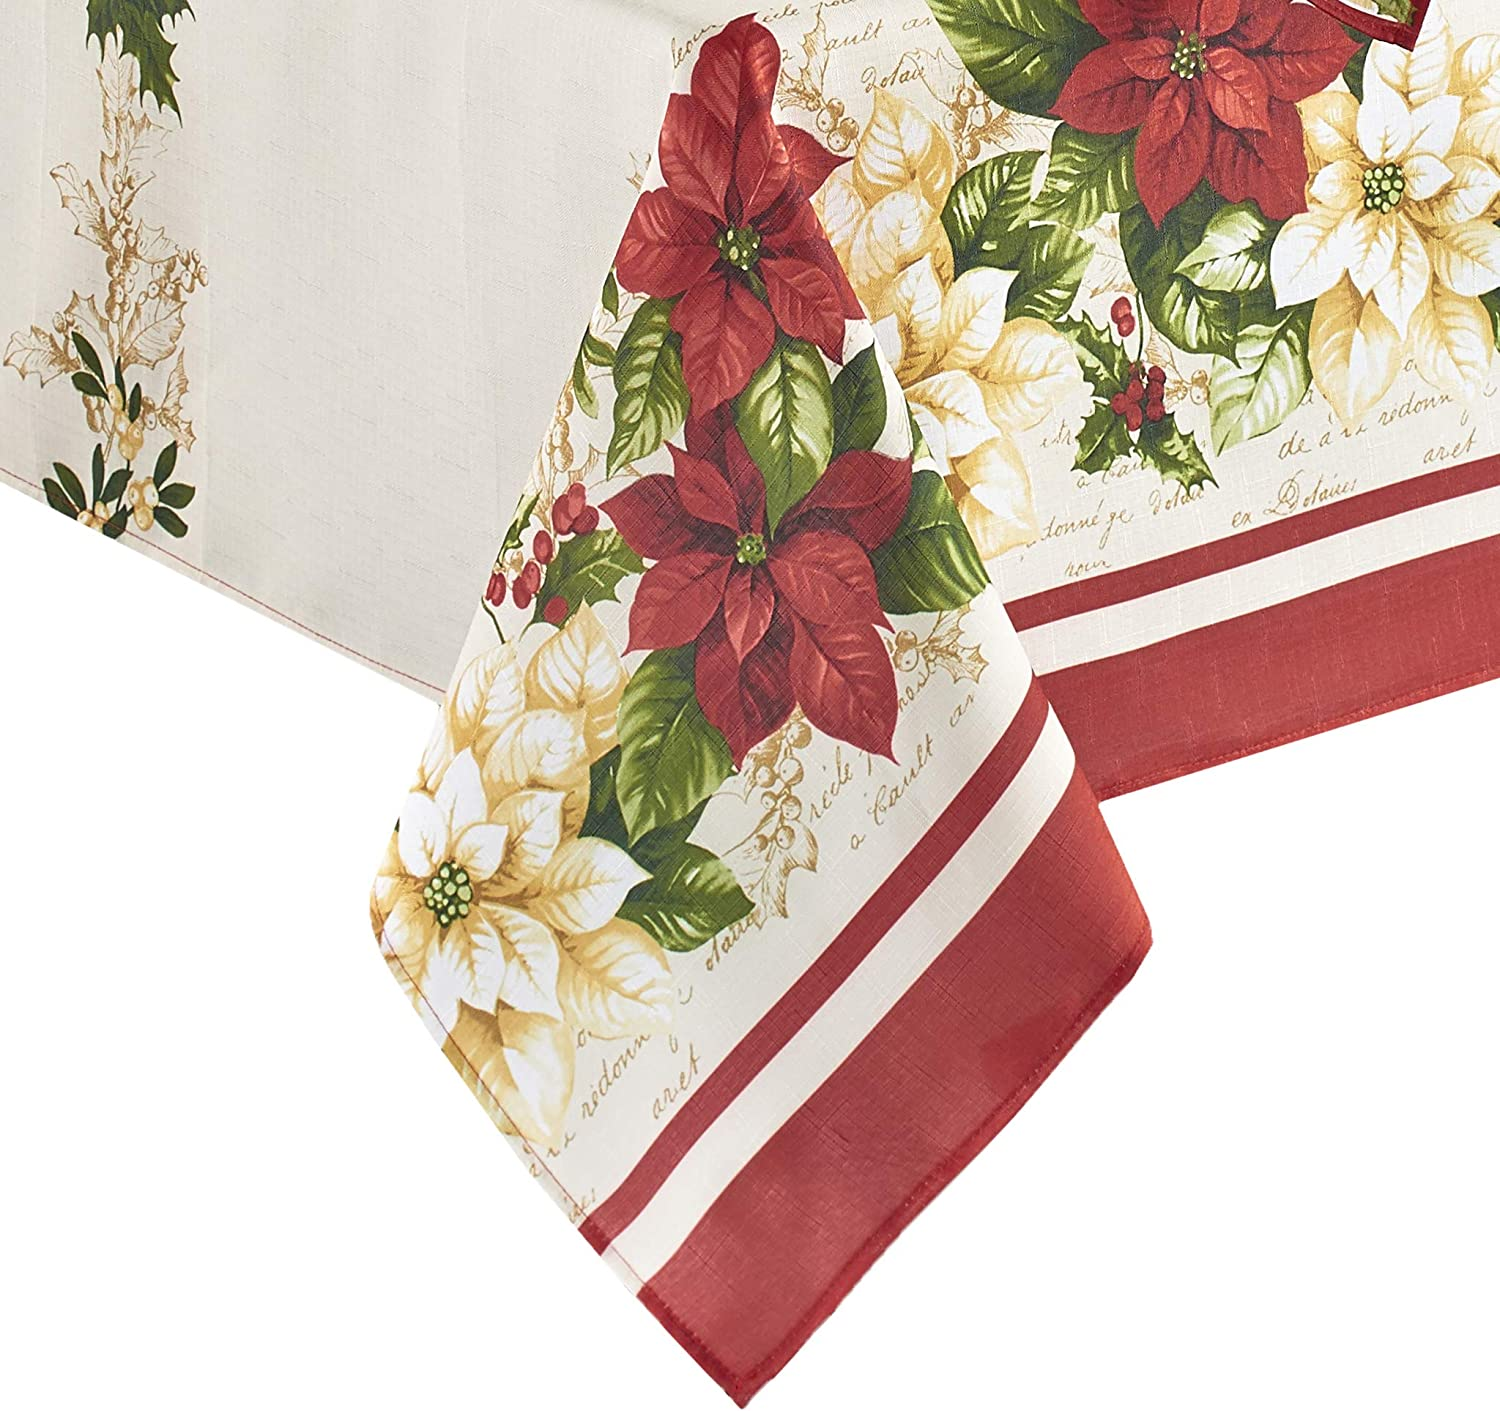 Elrene Home Fashions Red and White Poinsettias Holiday Tablecloth Multi 52 x 70